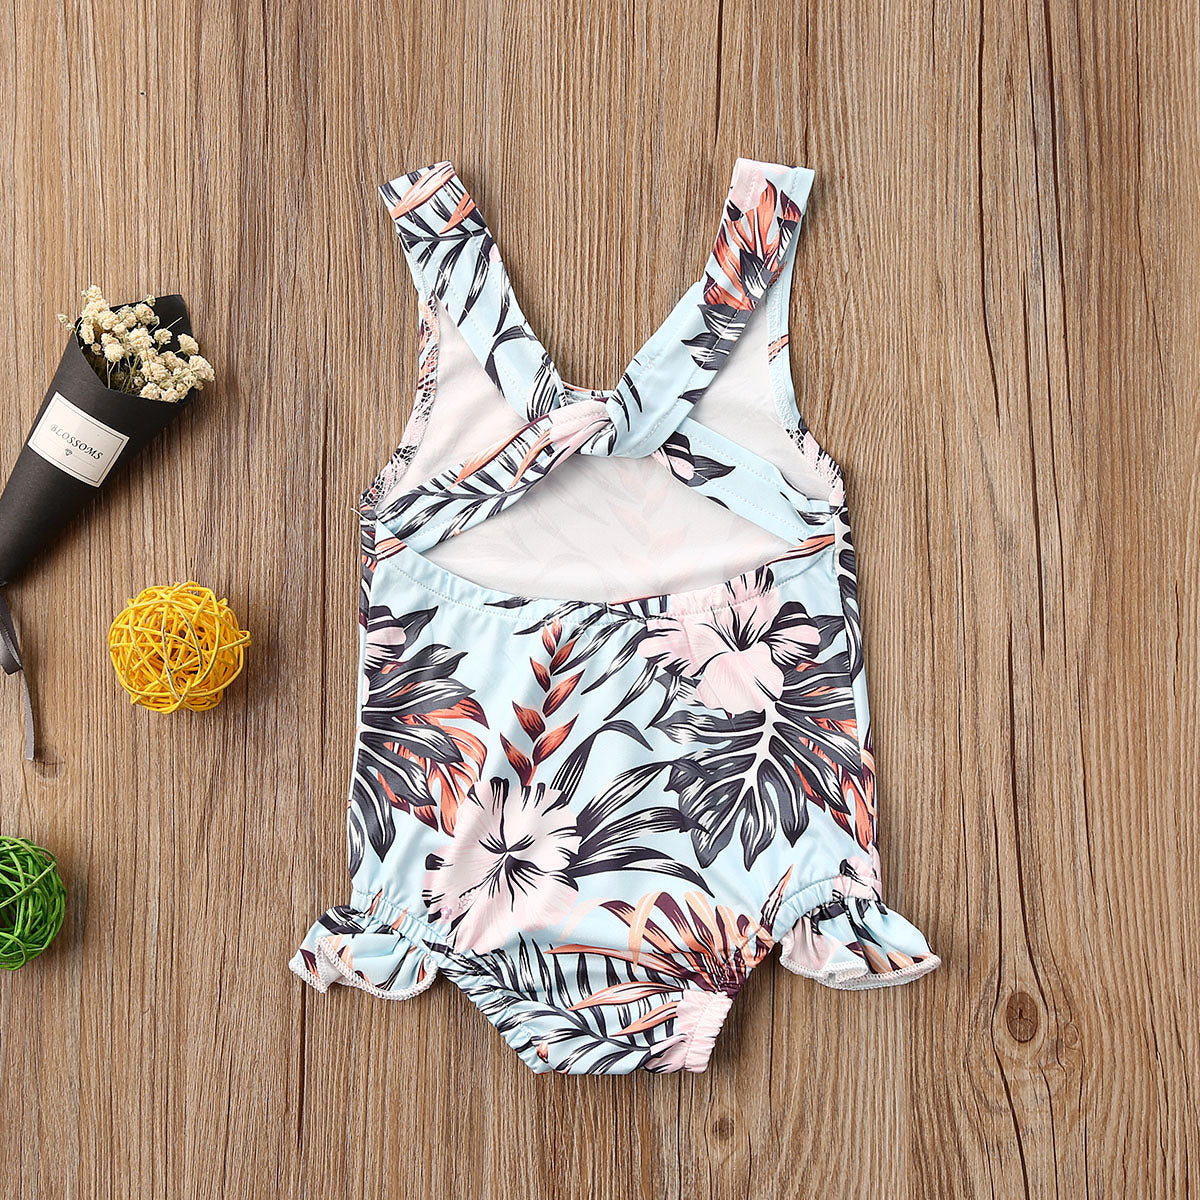 2020 Summer Outfit Clothes Size 0-3TRuffles Floral Print Swimwear/Shorts